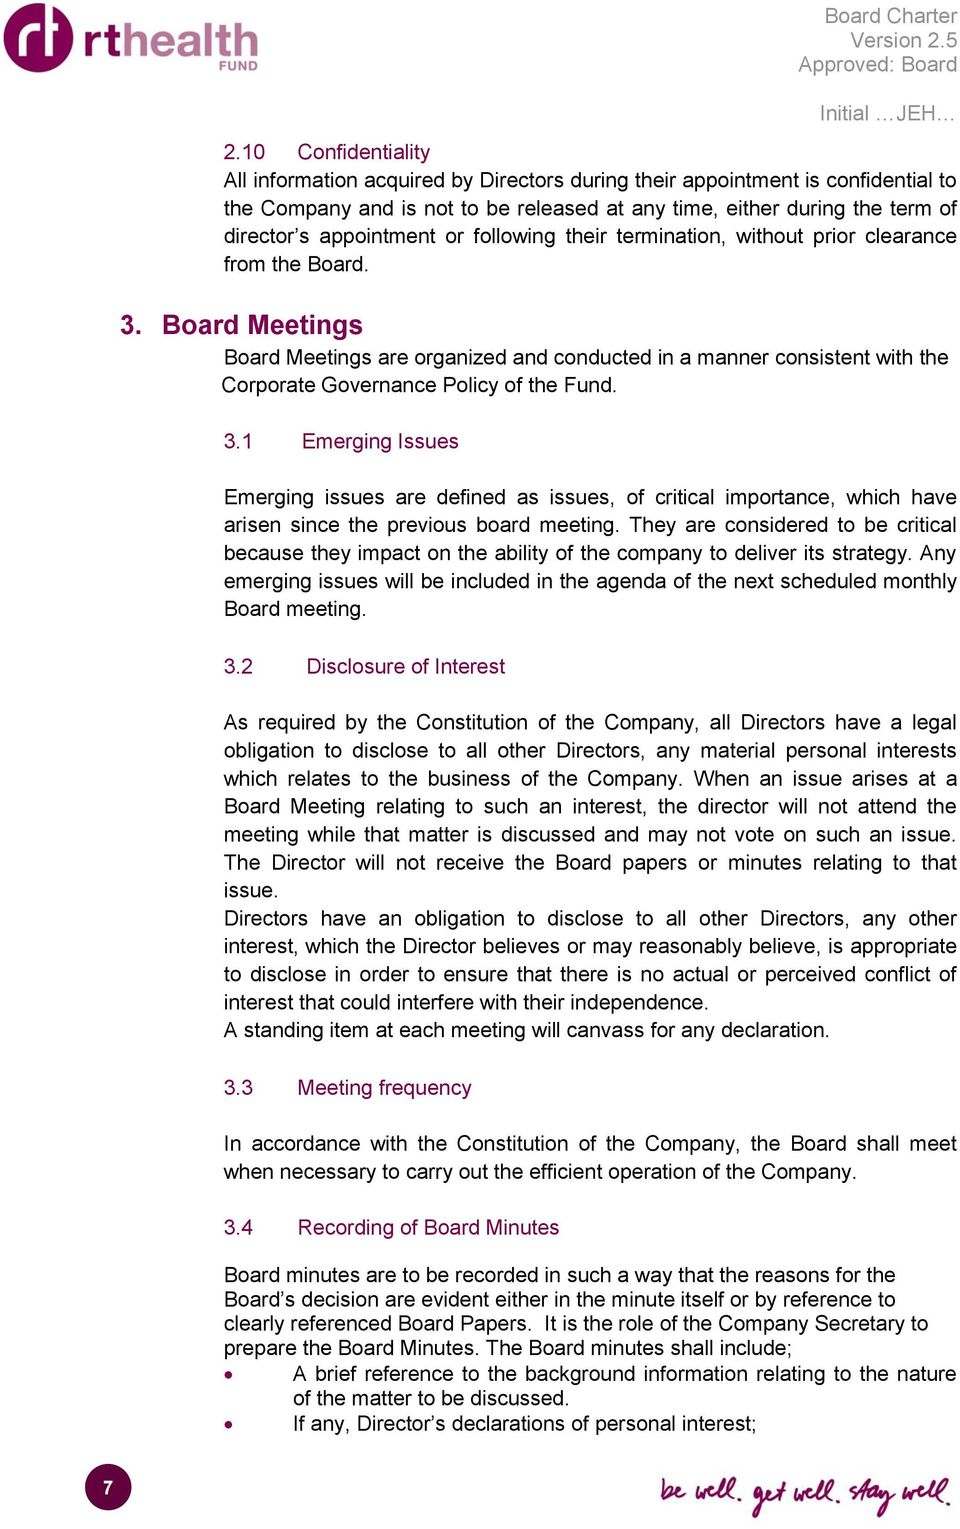 Board Meetings Board Meetings are organized and conducted in a manner consistent with the Corporate Governance Policy of the Fund. 3.